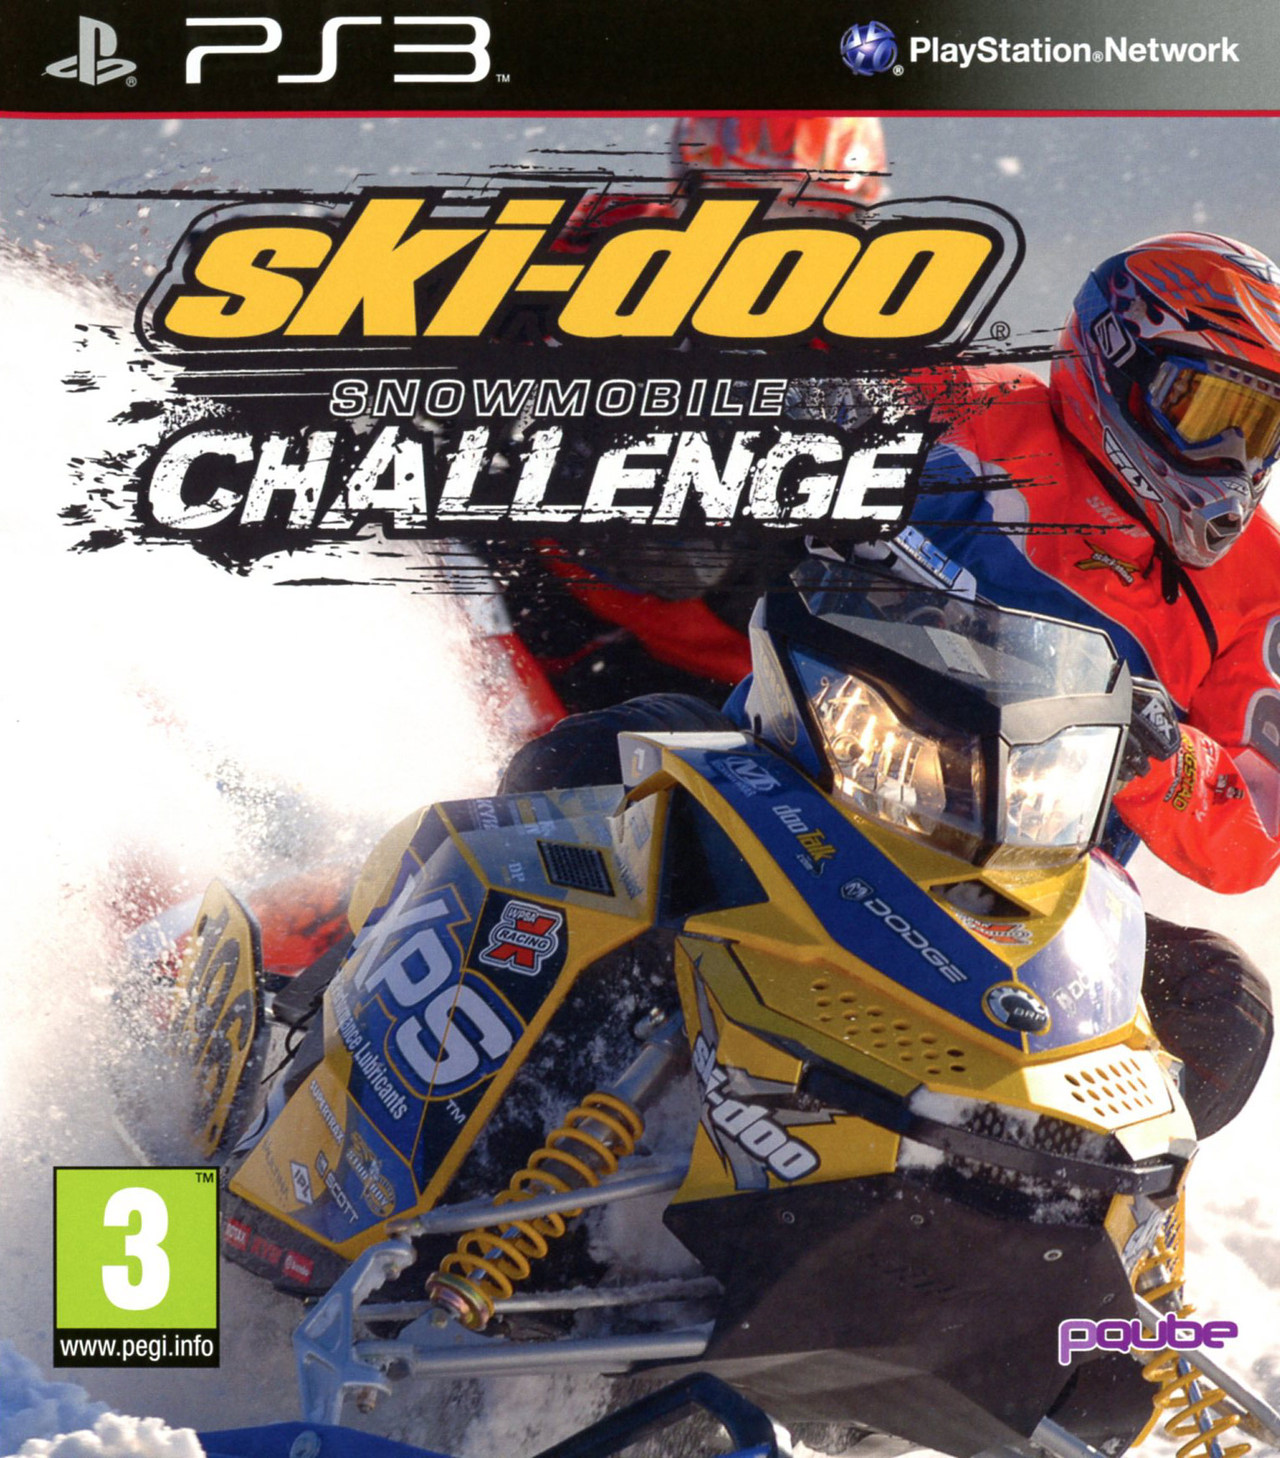 Images Ski Doo : Snowmobile Challenge PlayStation 3 - 1